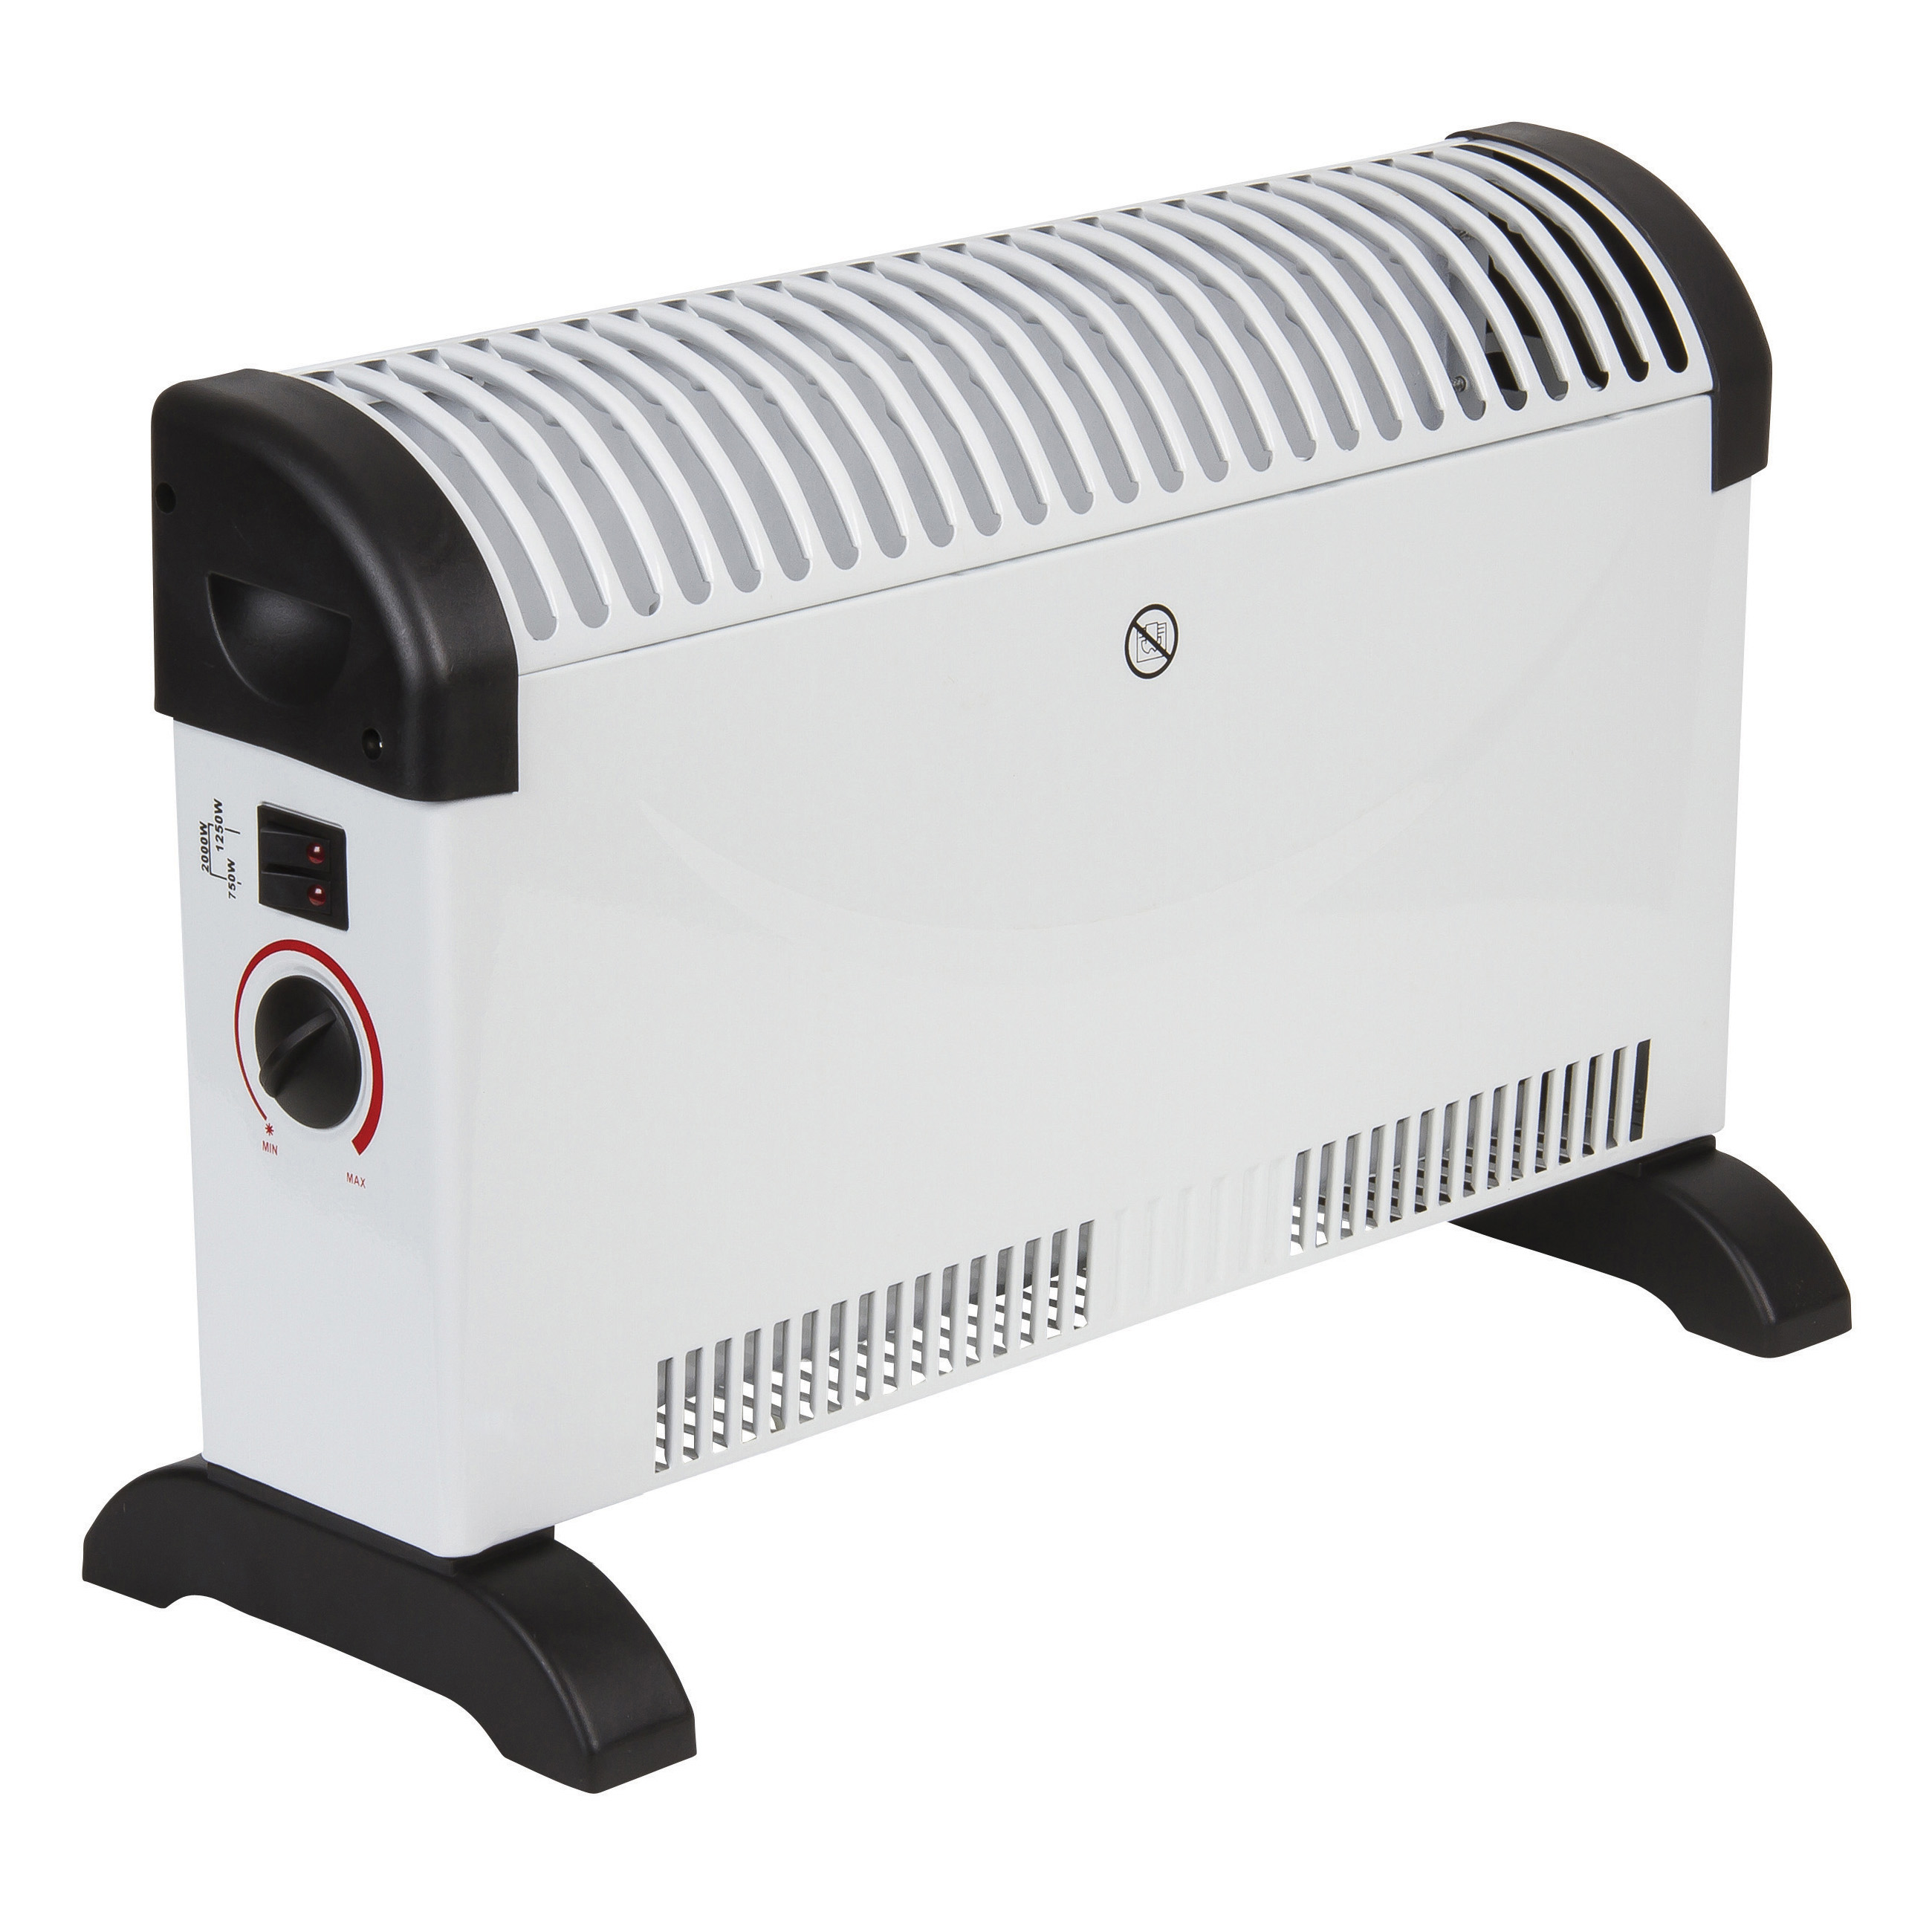 Image for 5 Star Facilities Convector Heater Electric 3 Heat Settings 750W/1250W/2000W White and Black (1)